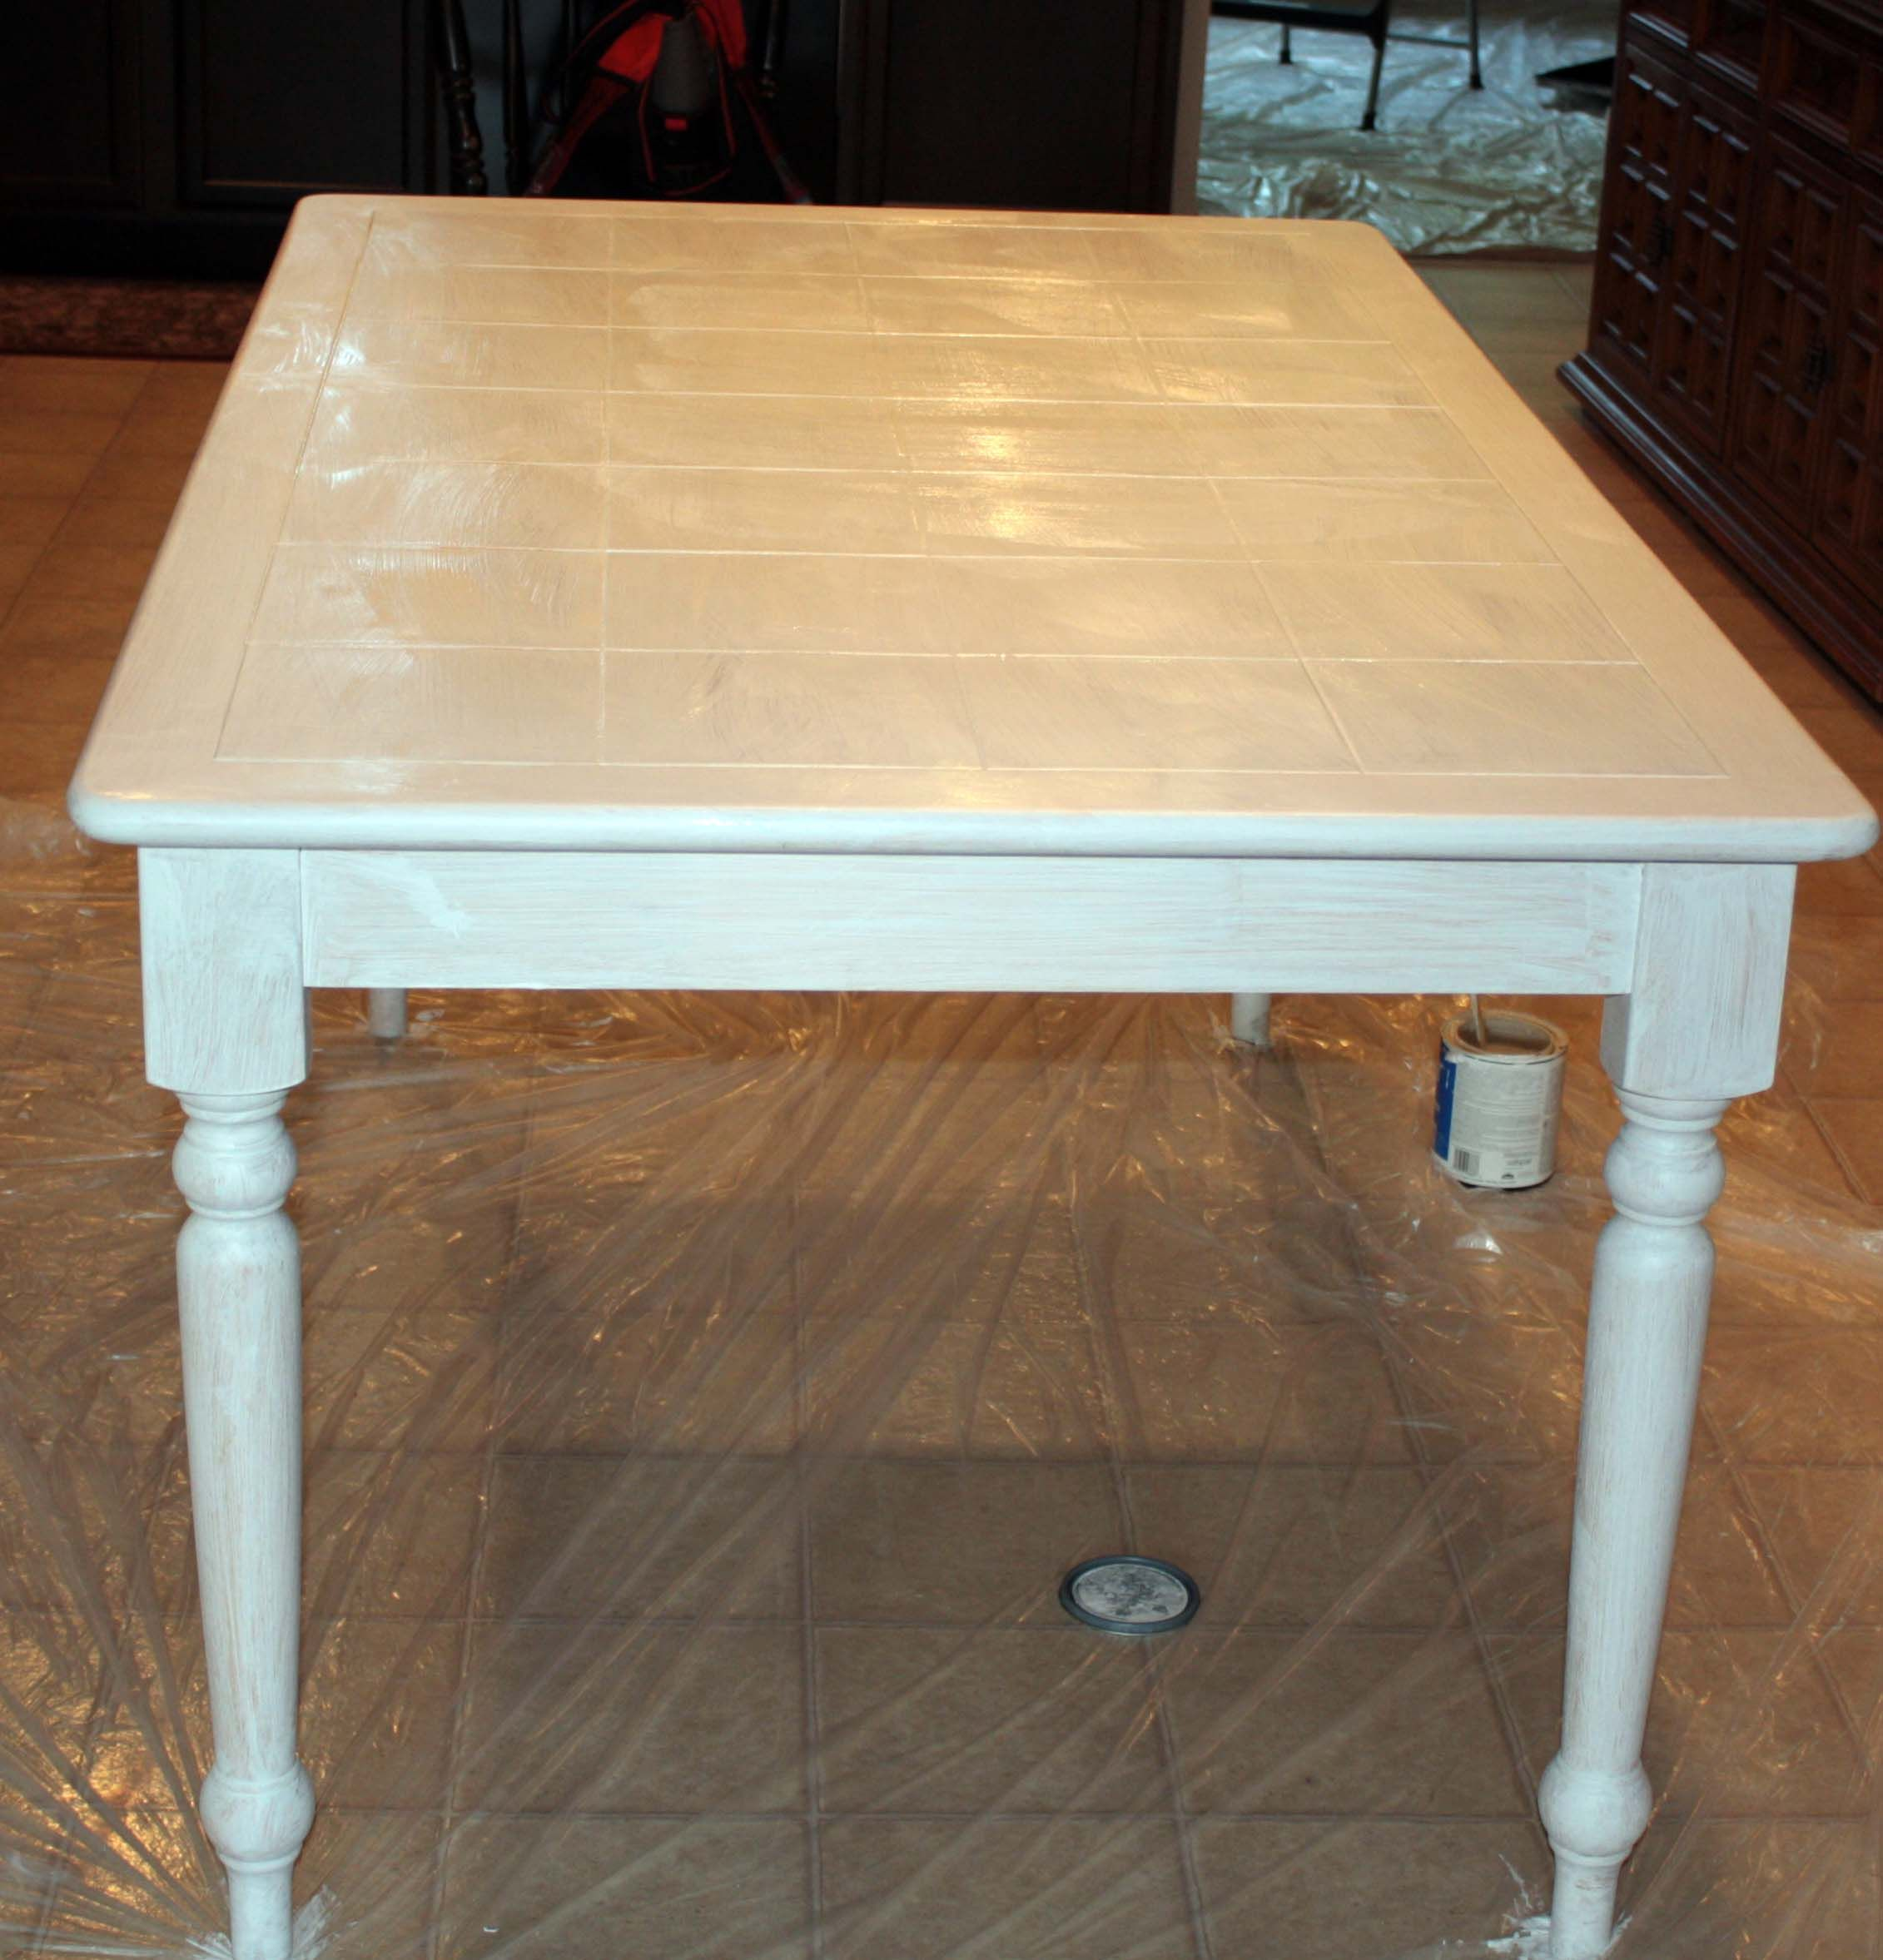 Painting A Tiled Table Top Kitchen Table Kitchen Table Redo